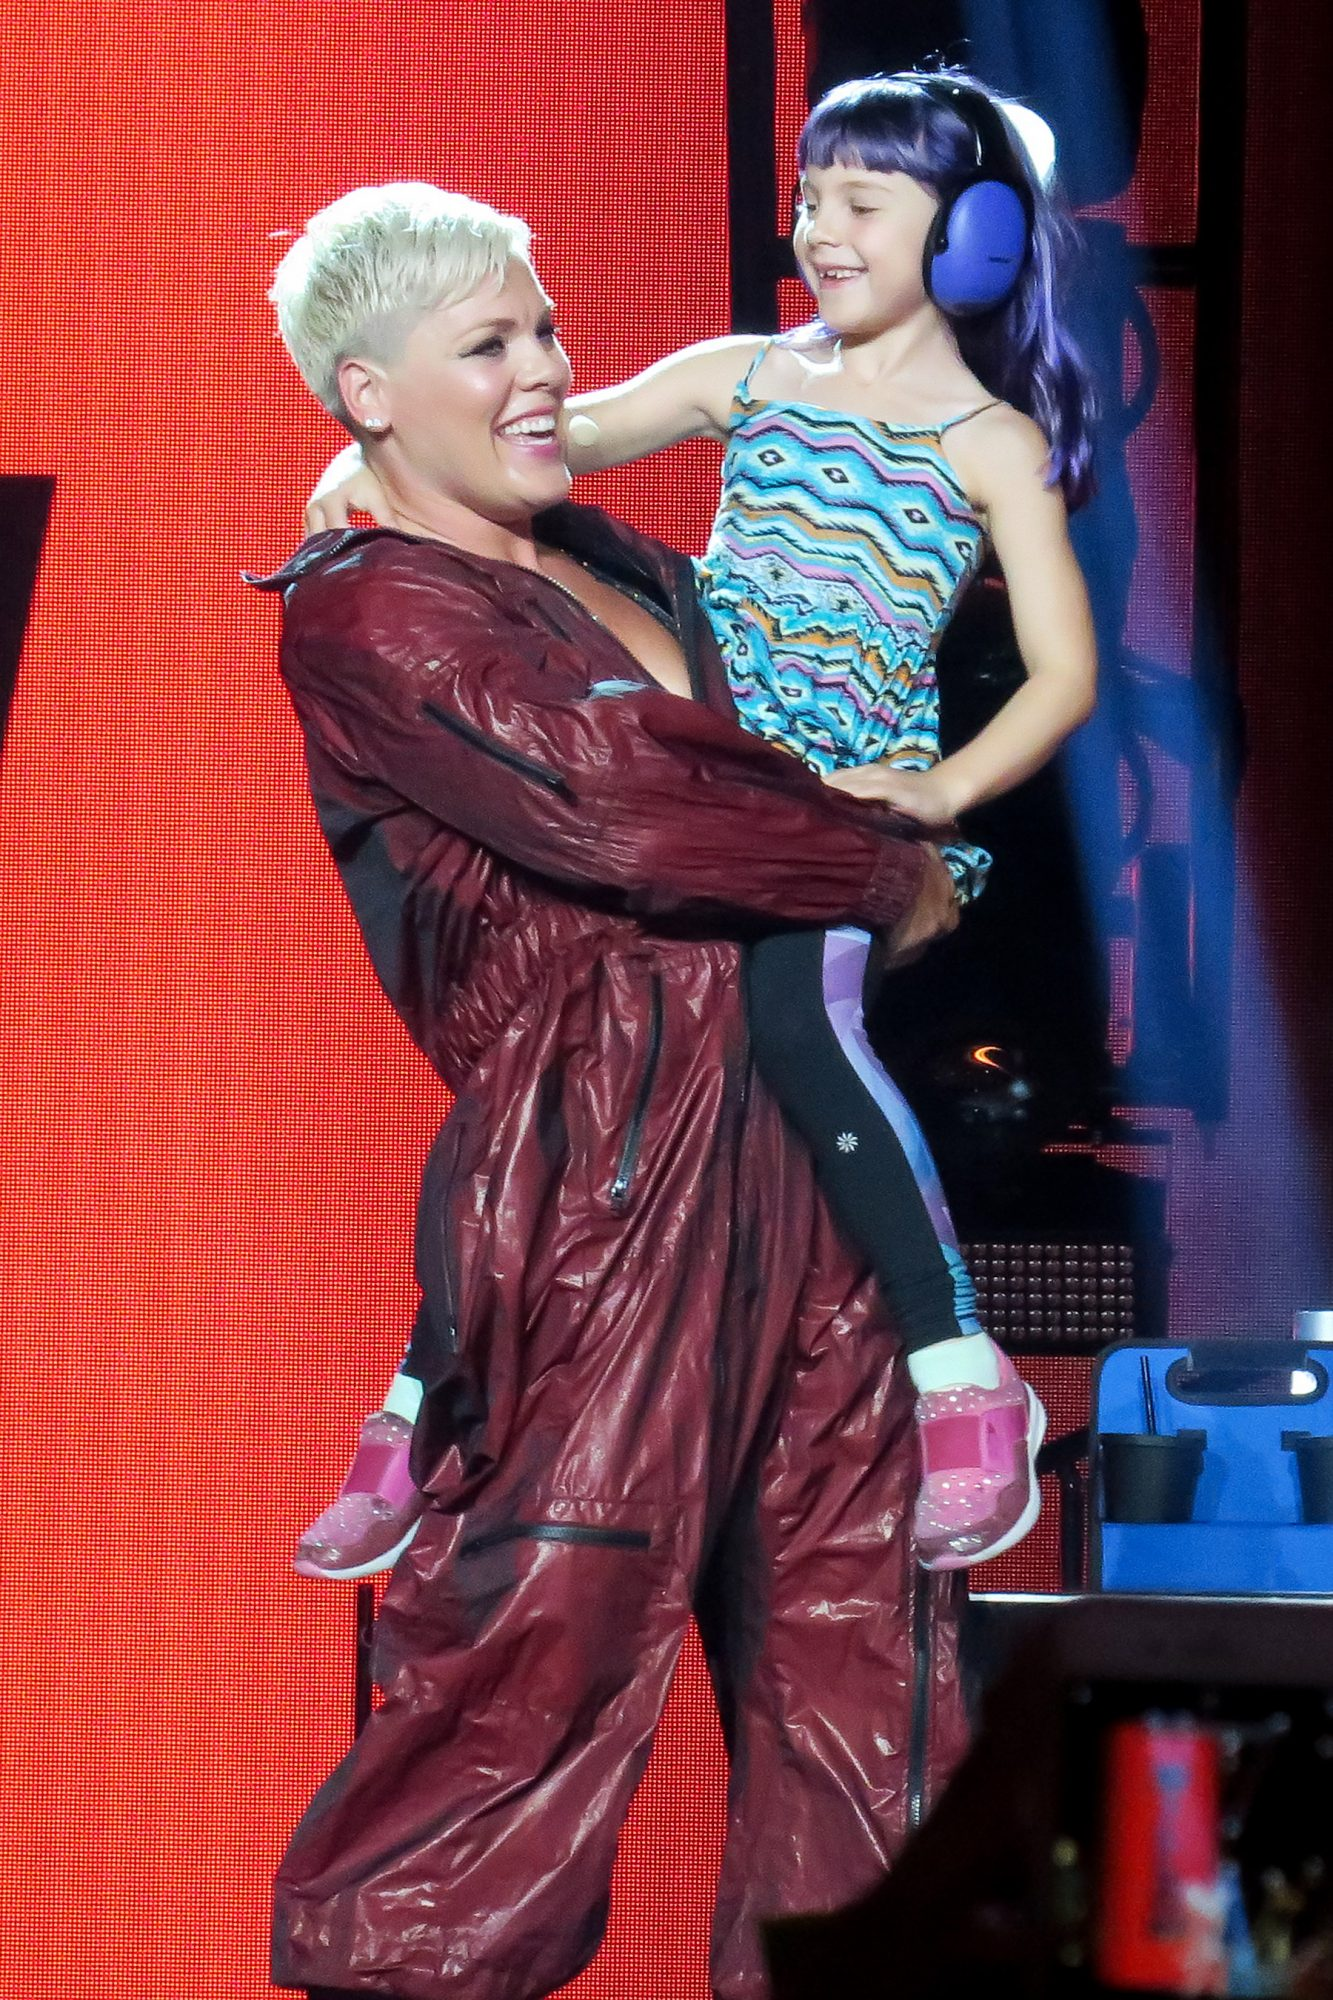 Pink And Her Daughter Willow Share A Moment On Stage In Los Angeles, USA.